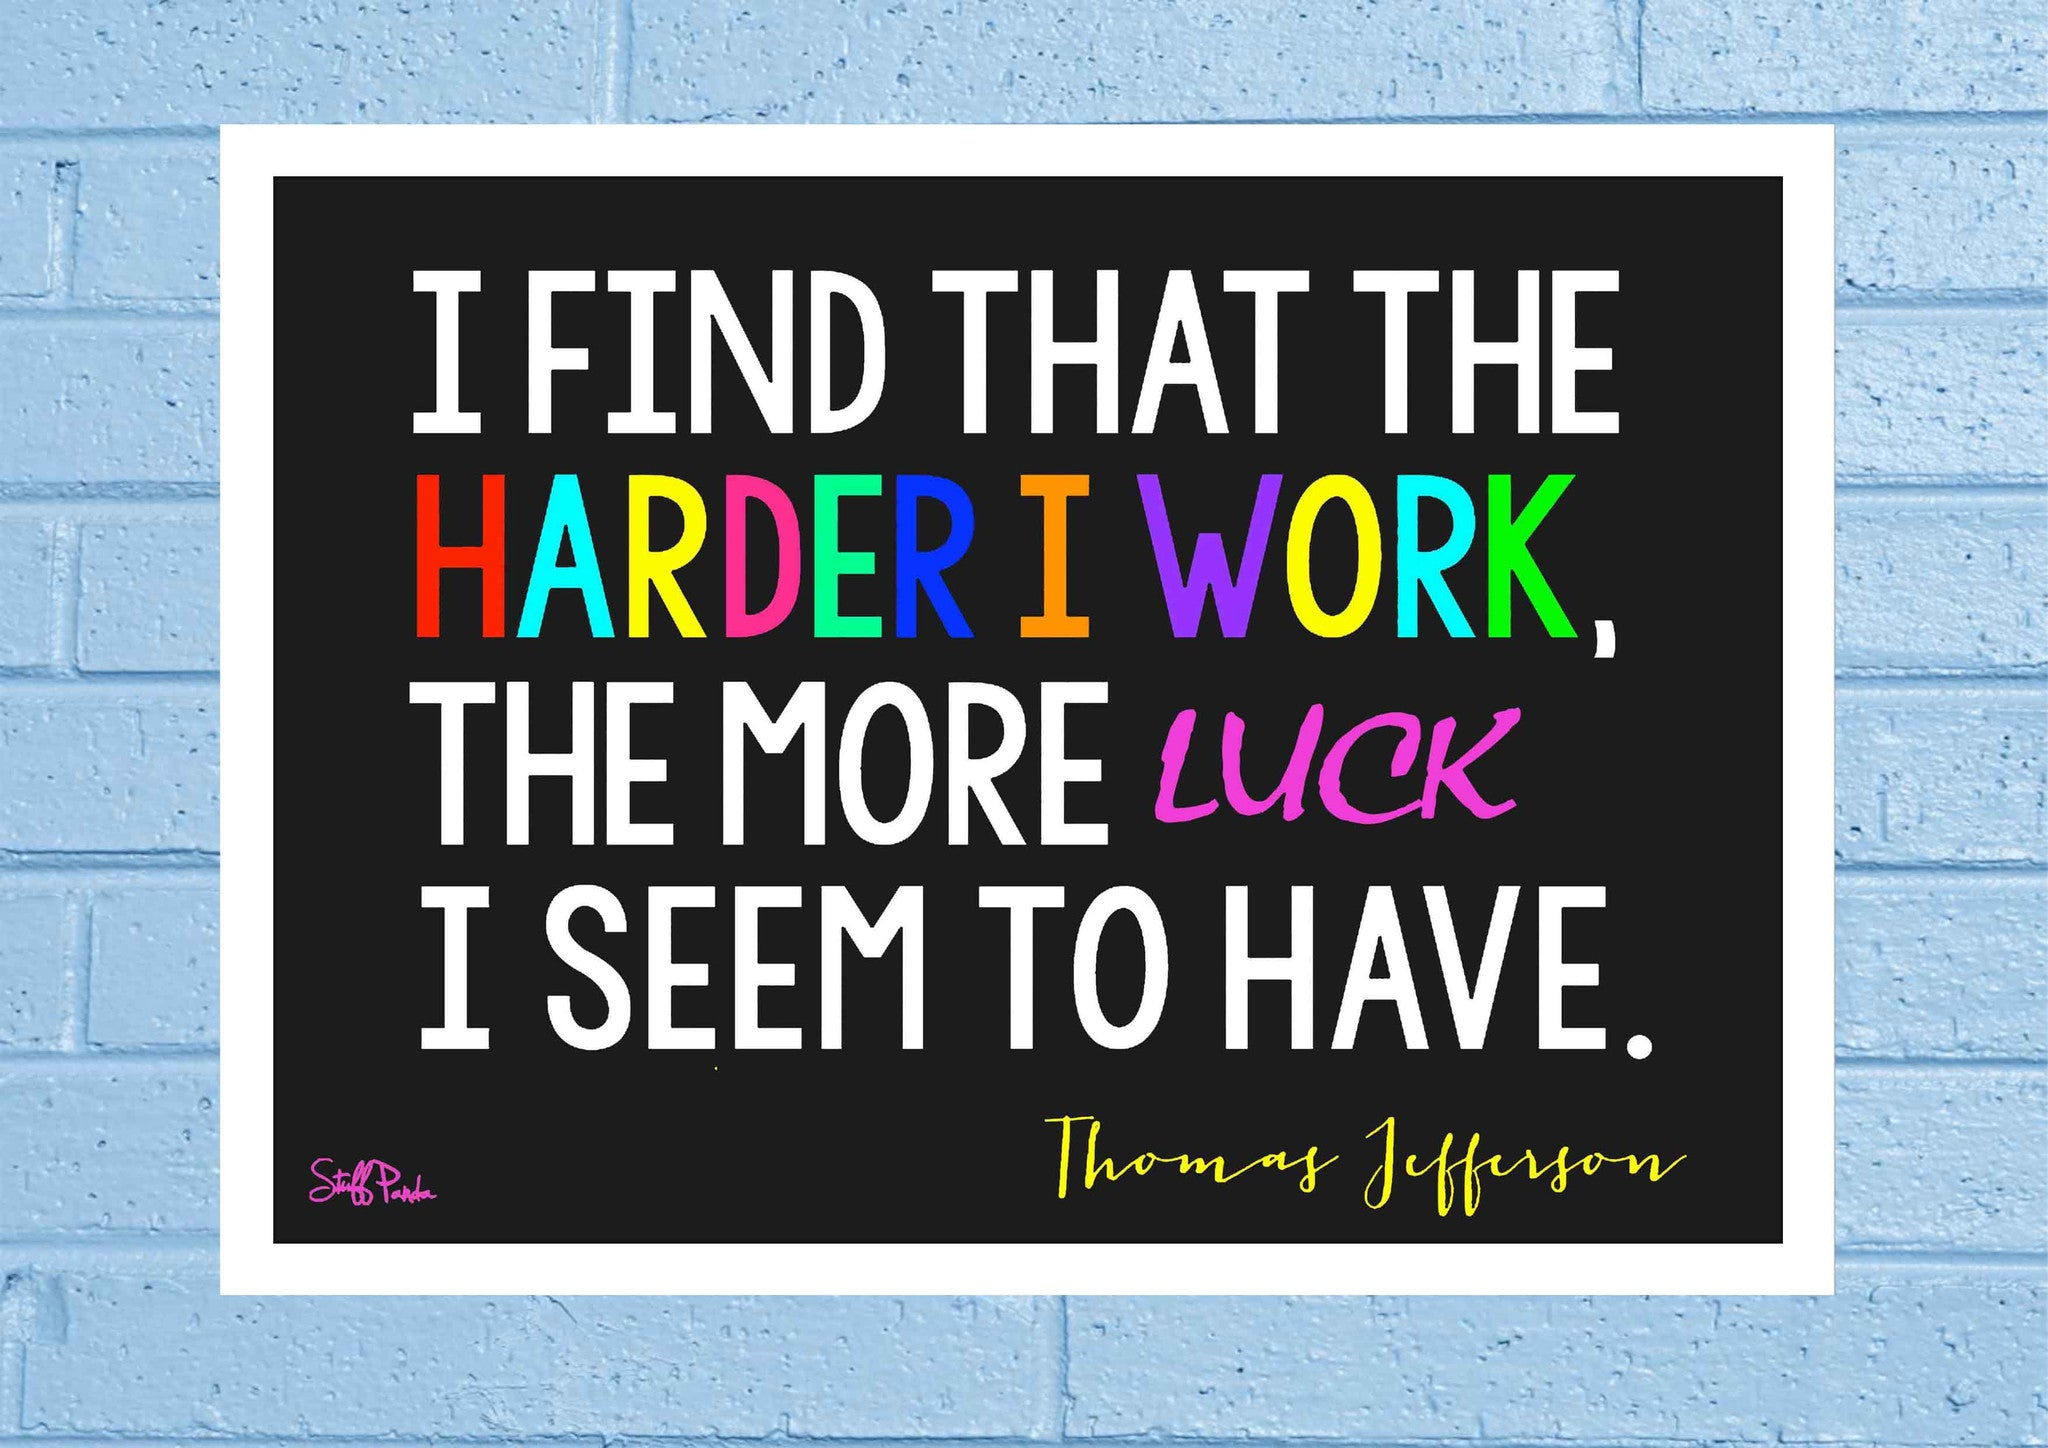 Cool Abstract Motivation Harder i work Luck Glass frame posters Wall art - stuffpanda - 1